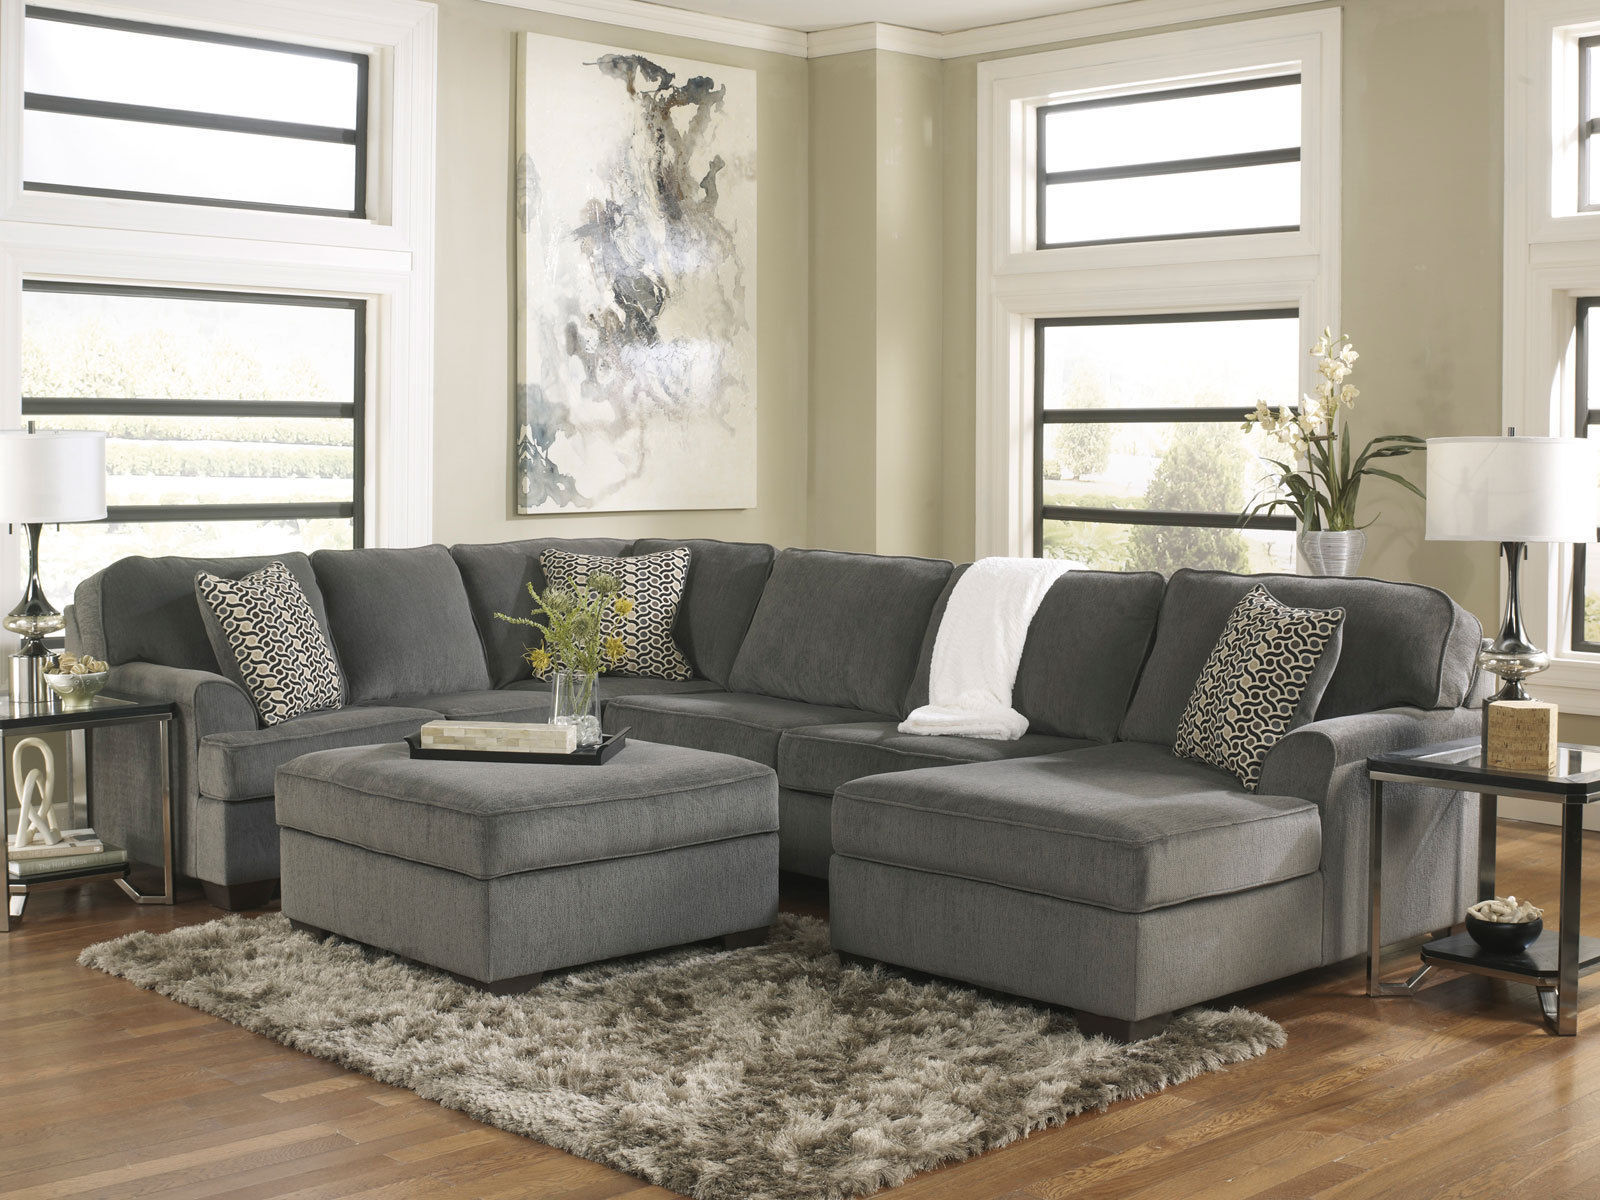 sole oversized modern gray fabric sofa couch sectional set. Black Bedroom Furniture Sets. Home Design Ideas